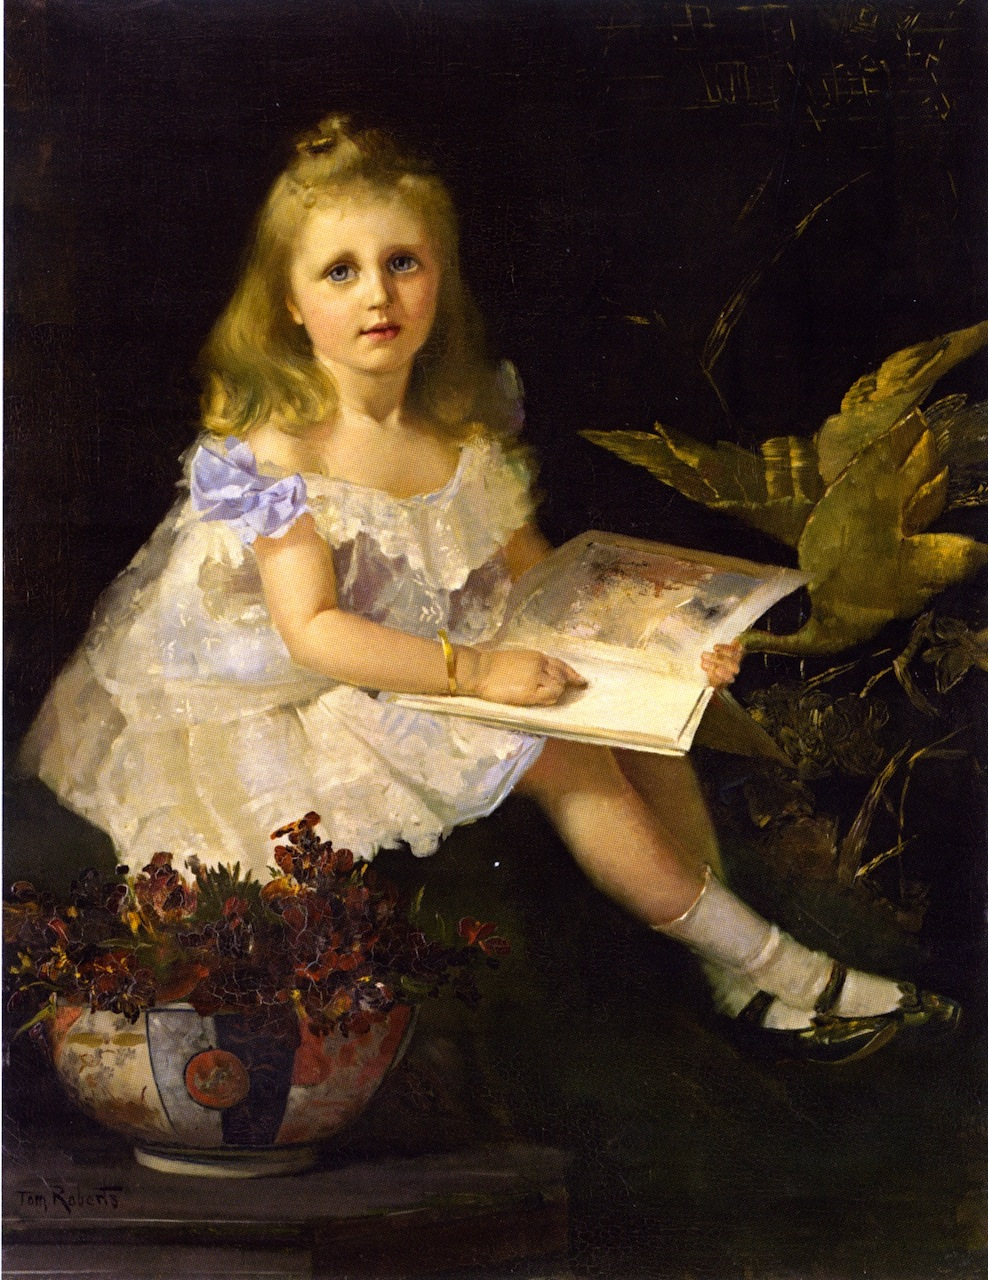 Louise, Daughter of the Hon. L. I. Smith, 1888